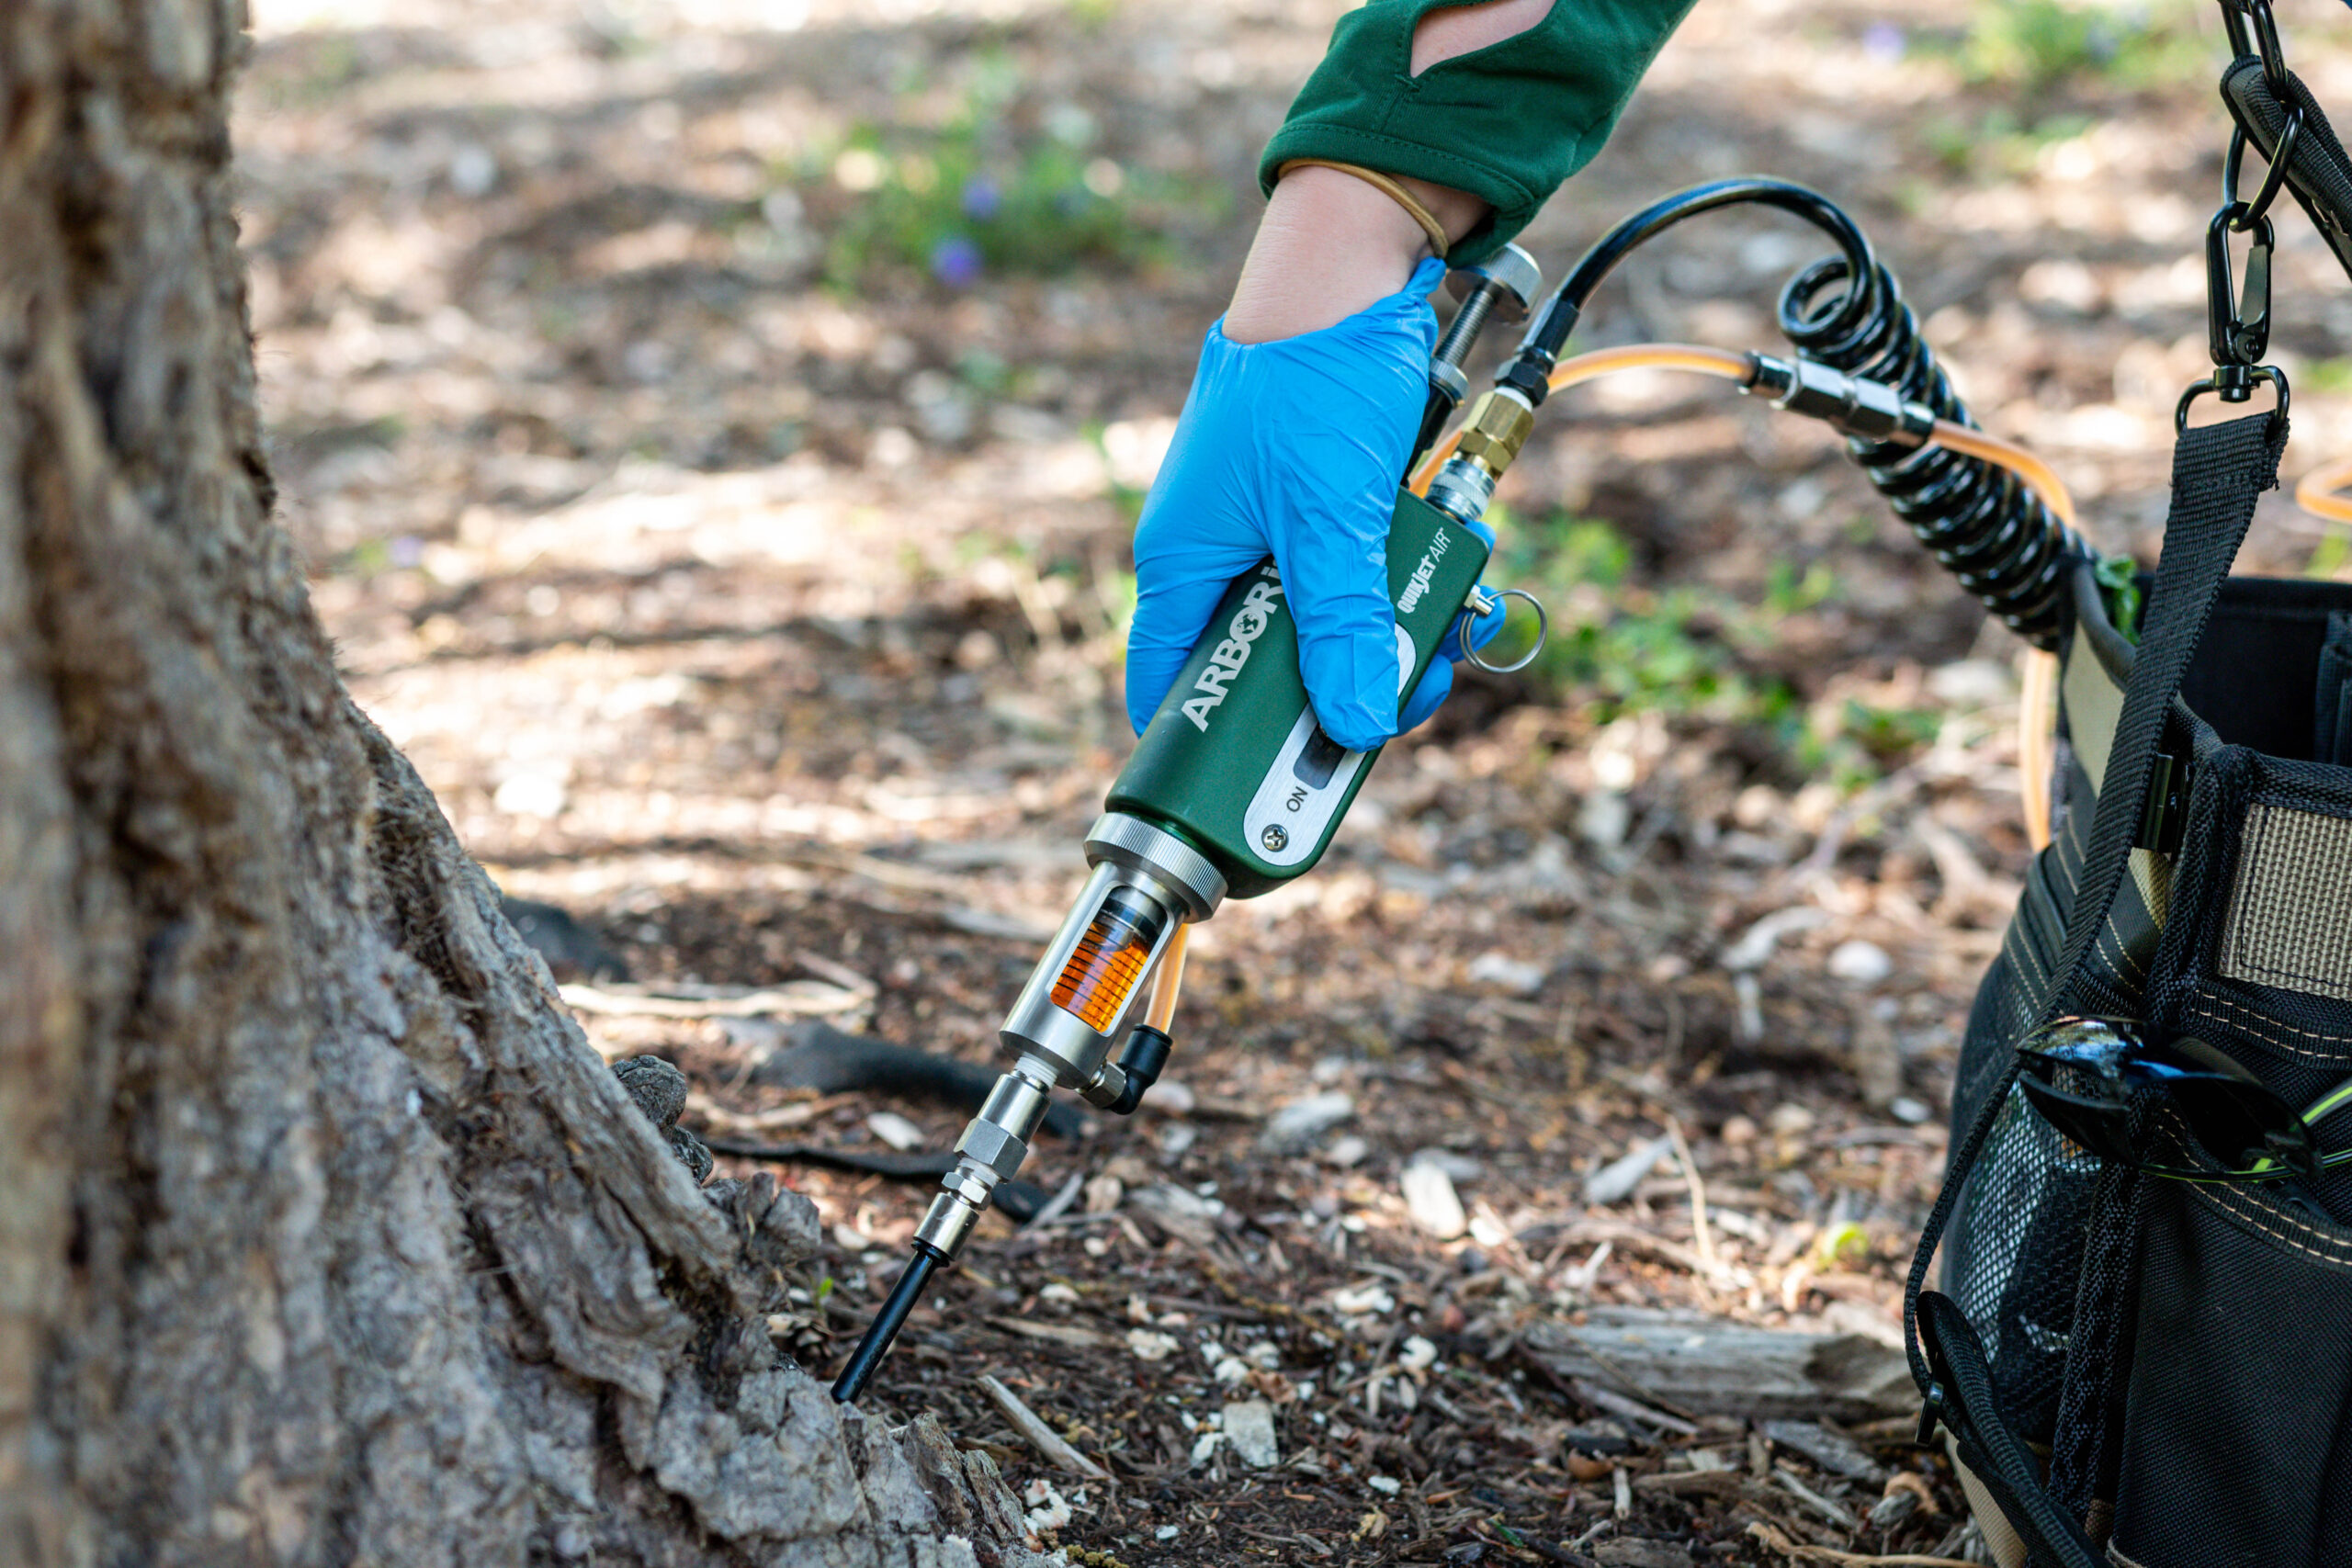 Injecting Insecticide Into A Hemlock Tree